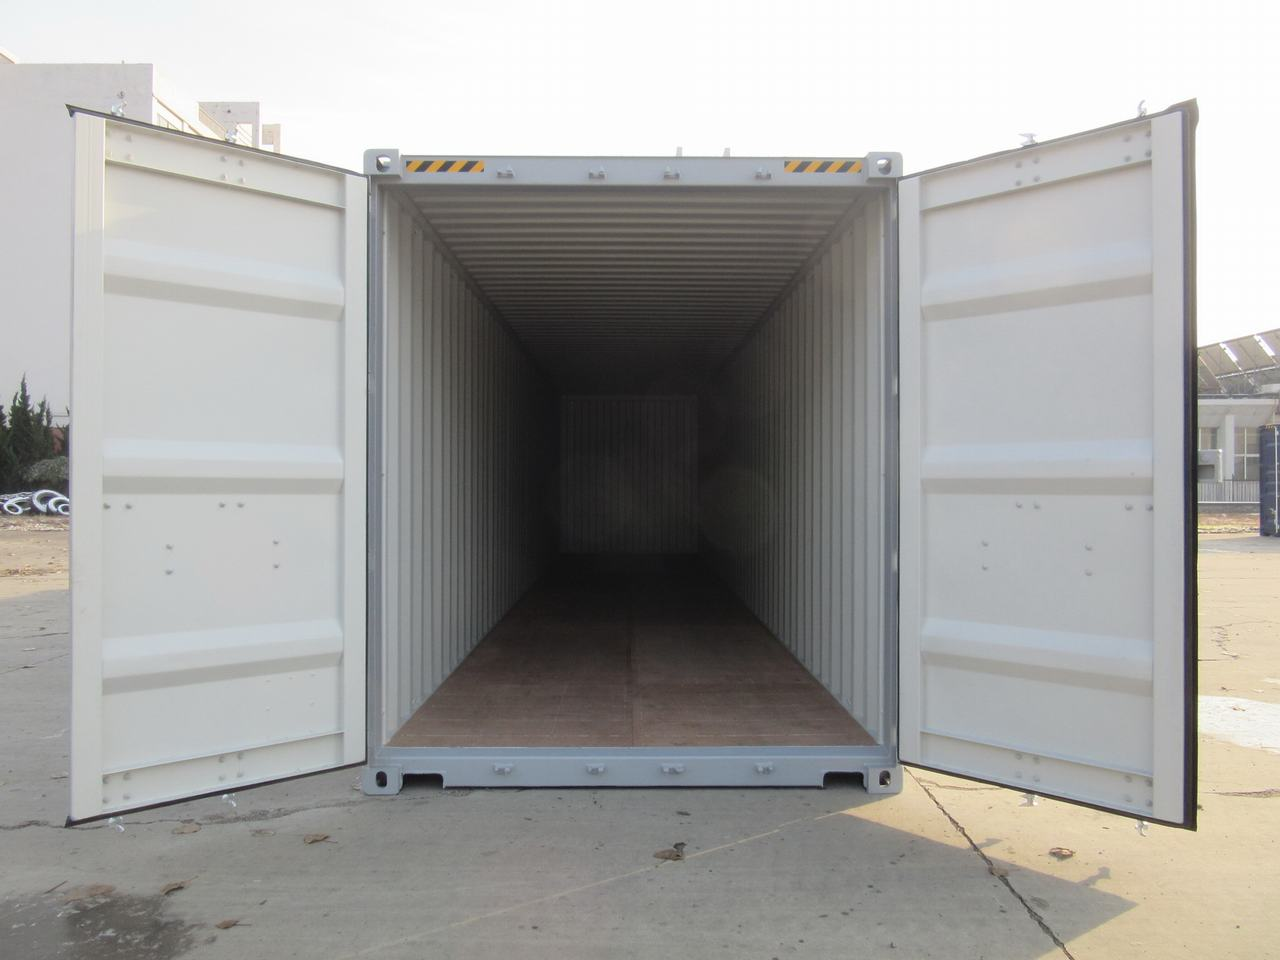 front view of a shipping container with the doors open